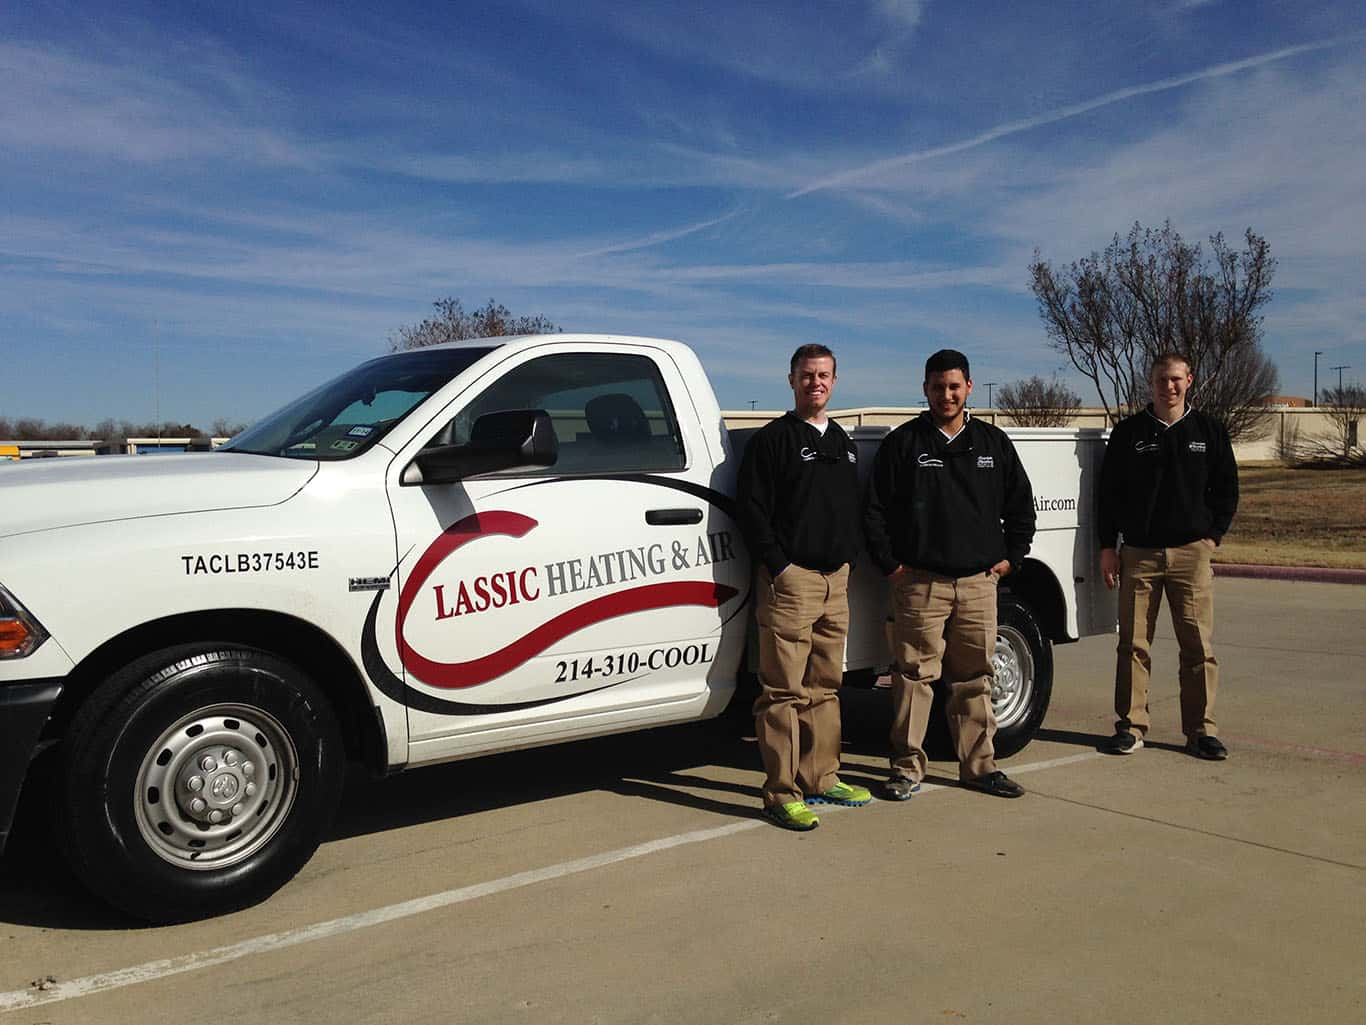 3 men in Classic Heating & Air uniform posing next to Classic Heating & Air pickup truck